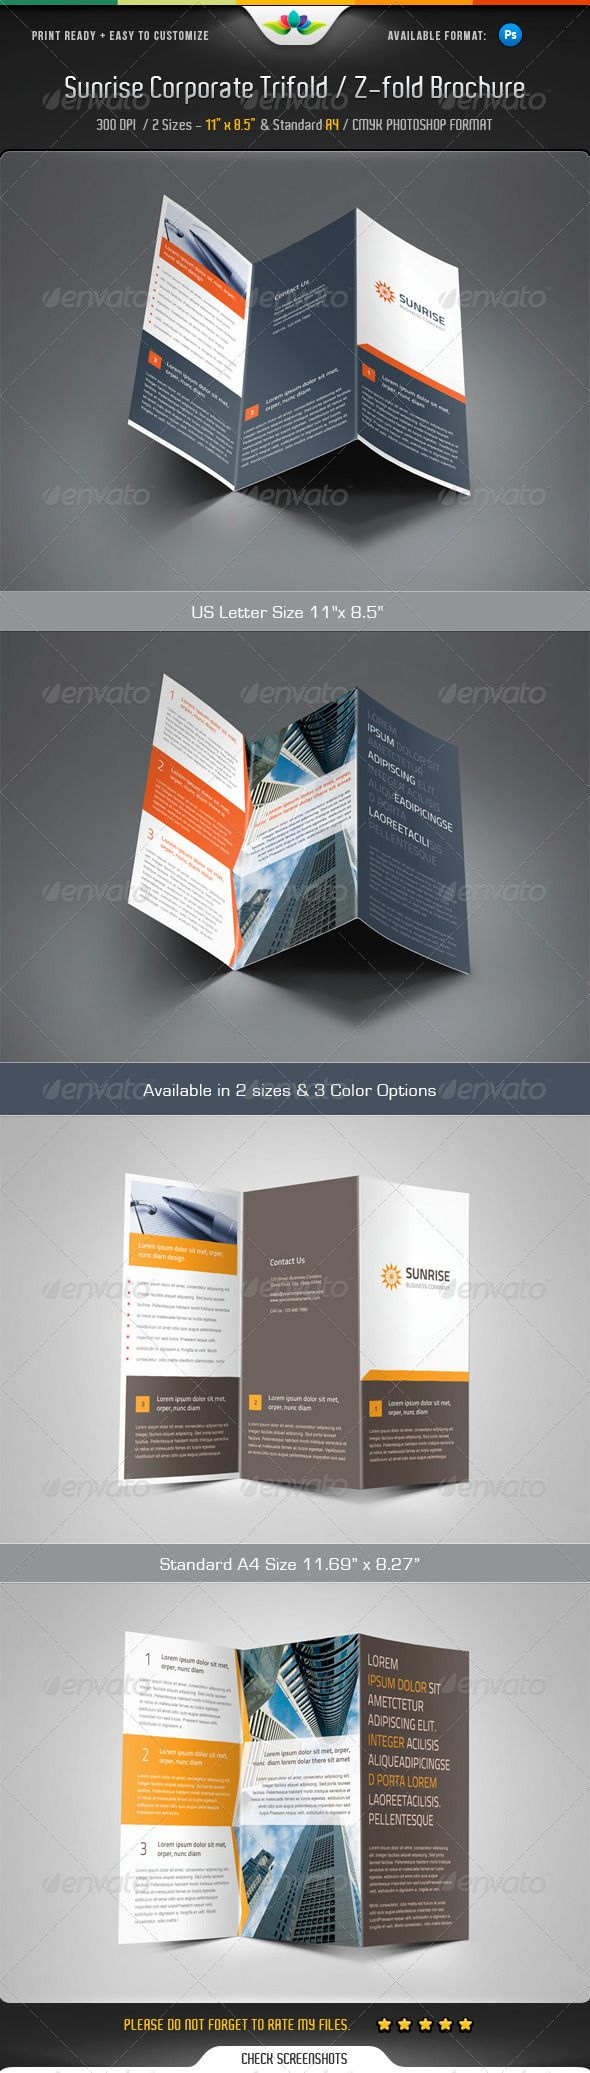 Delighted 1 Page Proposal Template Thick 1 Week Schedule Template Flat 110 Block Label Template 1st Birthday Invite Templates Old 2 Page Resume Format Doc Bright2 Page Resume Template Word Sunrise Corporate Trifold \u0026 Z Fold Brochure | Brochures, Search ..